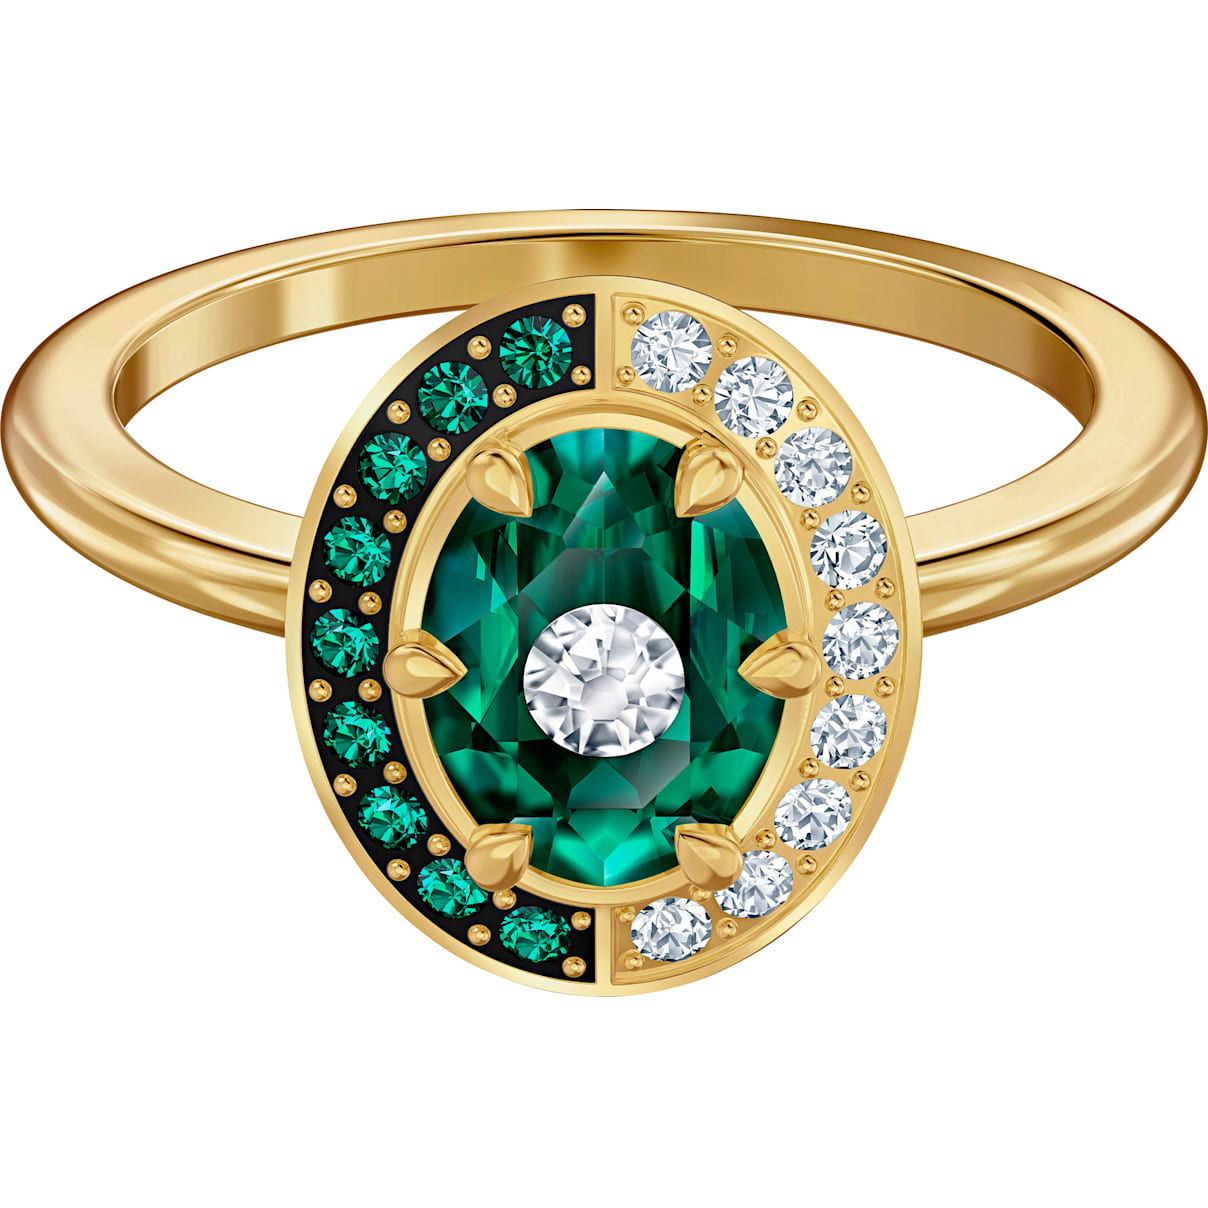 Swarovski Black Baroque Motif Ring, Green, Gold-tone plated